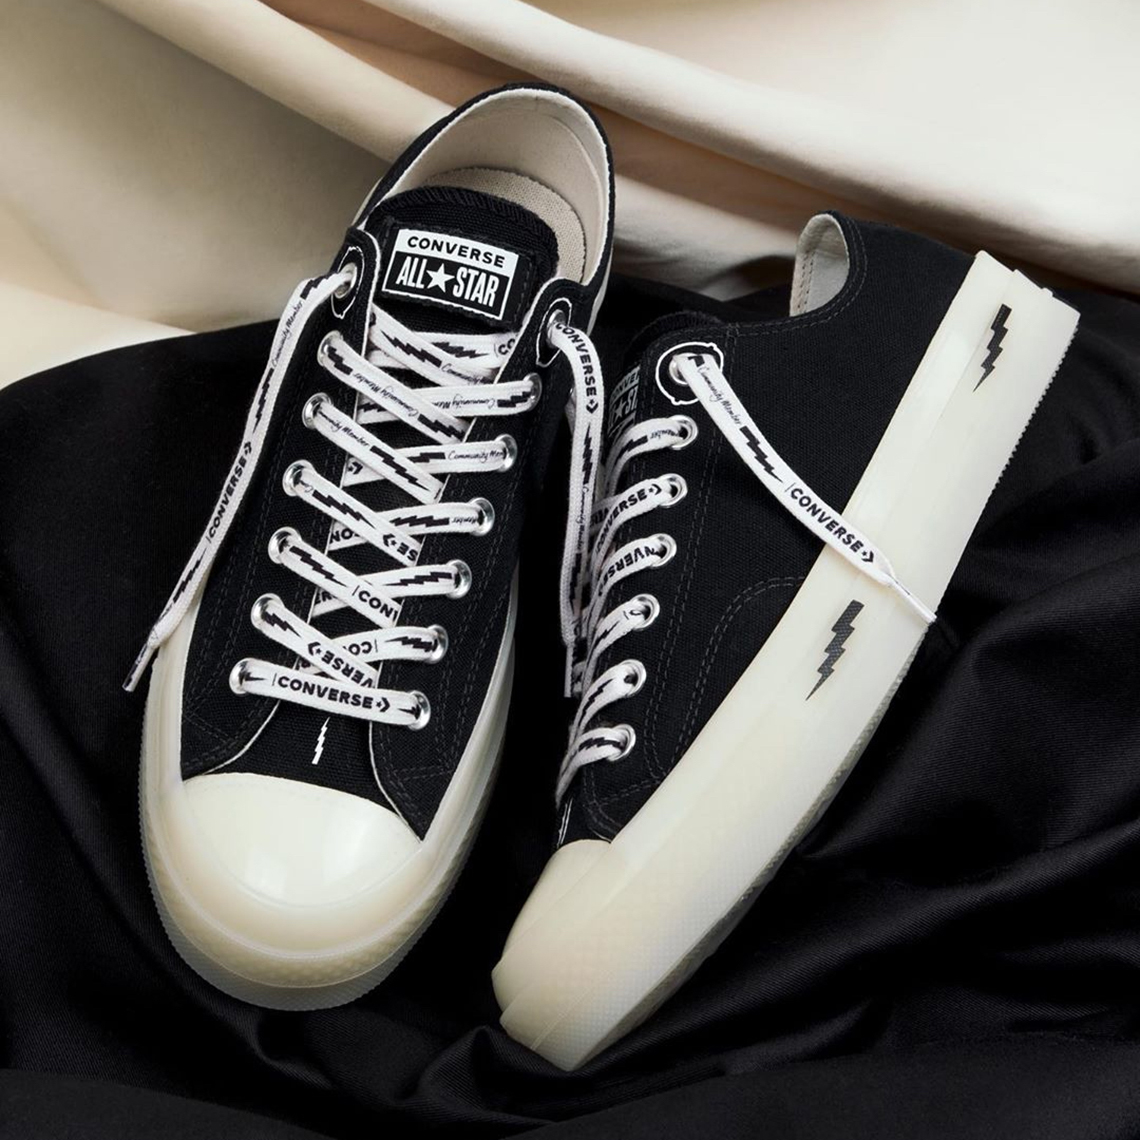 Offspring x Converse Chuck 70 'Community' pack | Sneakerjagers